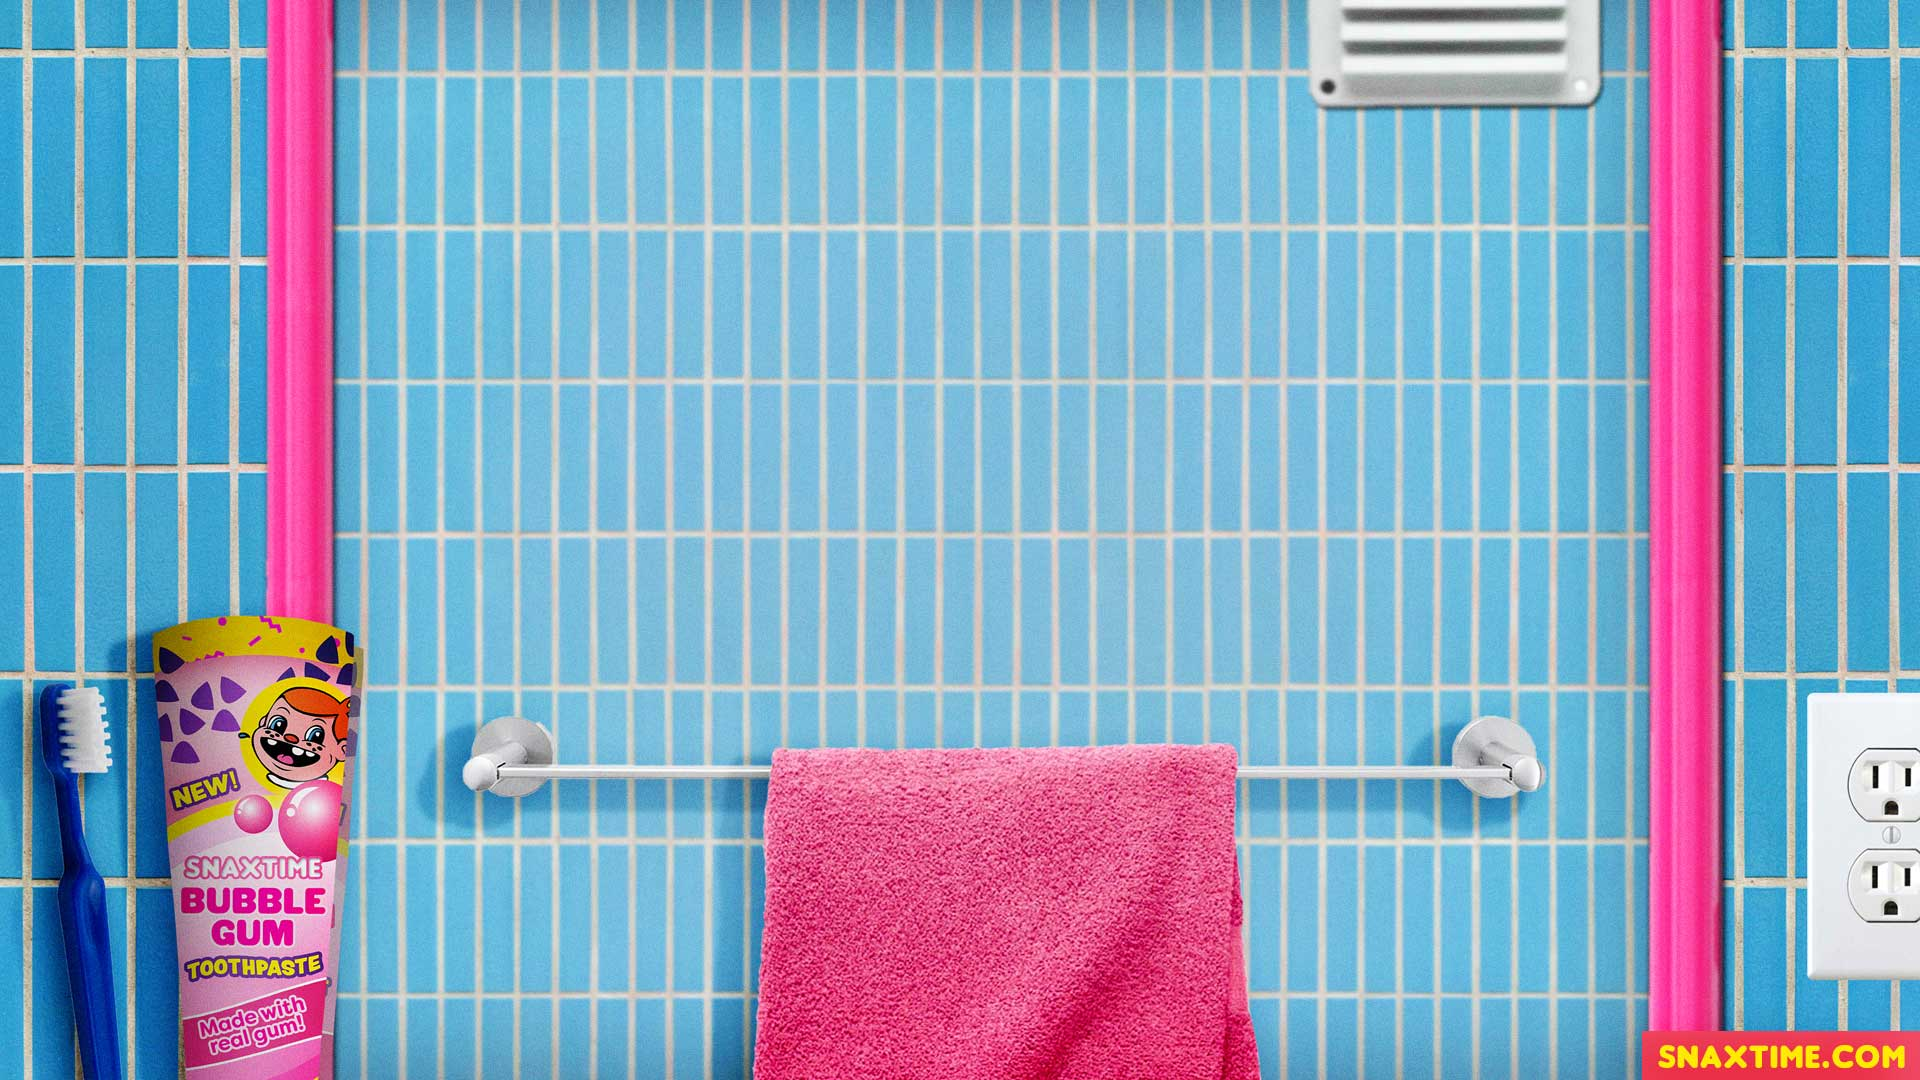 Free Zoom Background - Retro Pink and Blue Bathroom with Bubblegum Toothpaste